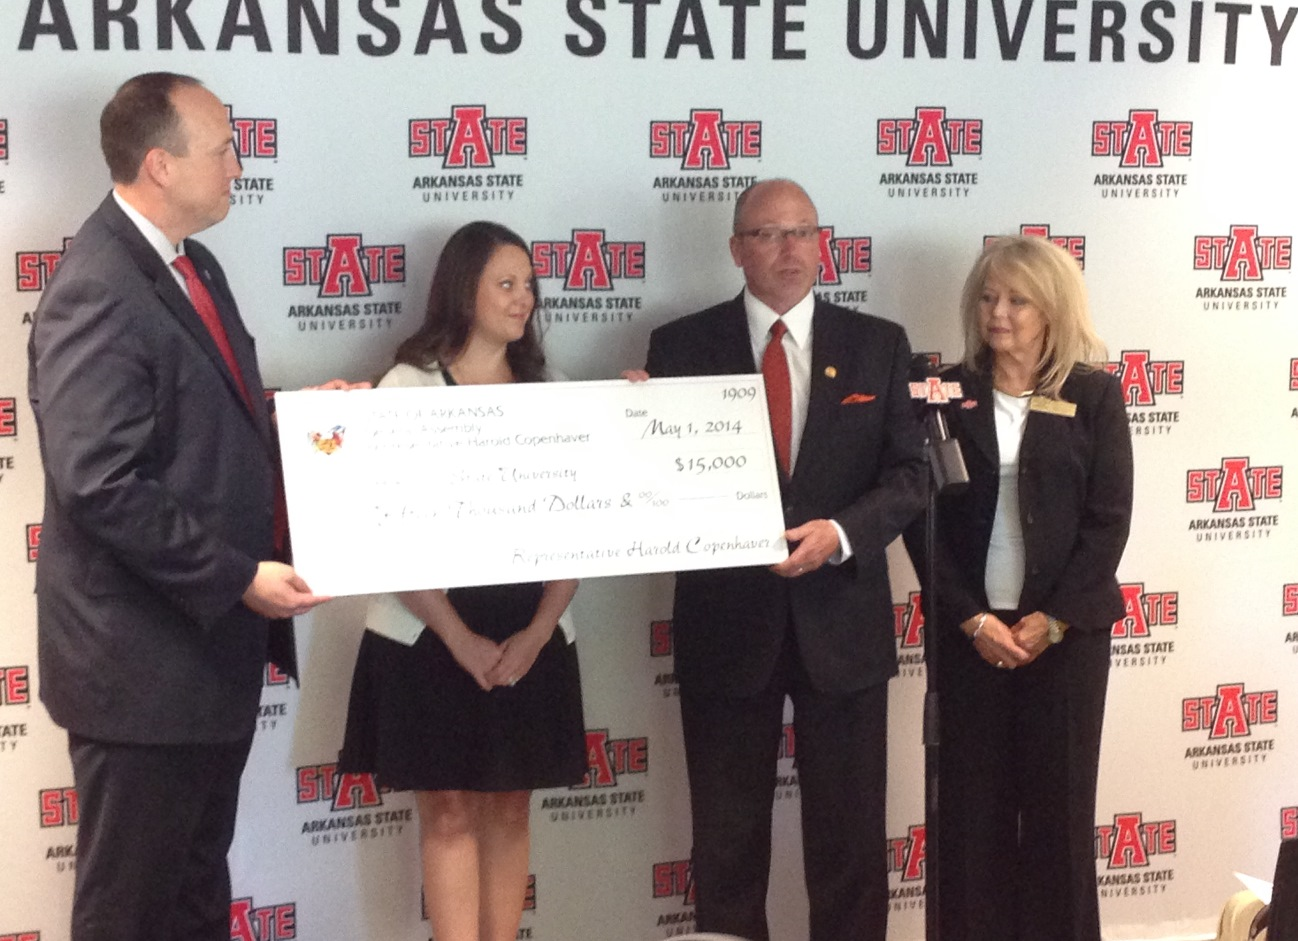 Rep. Copenhaver Presents Check